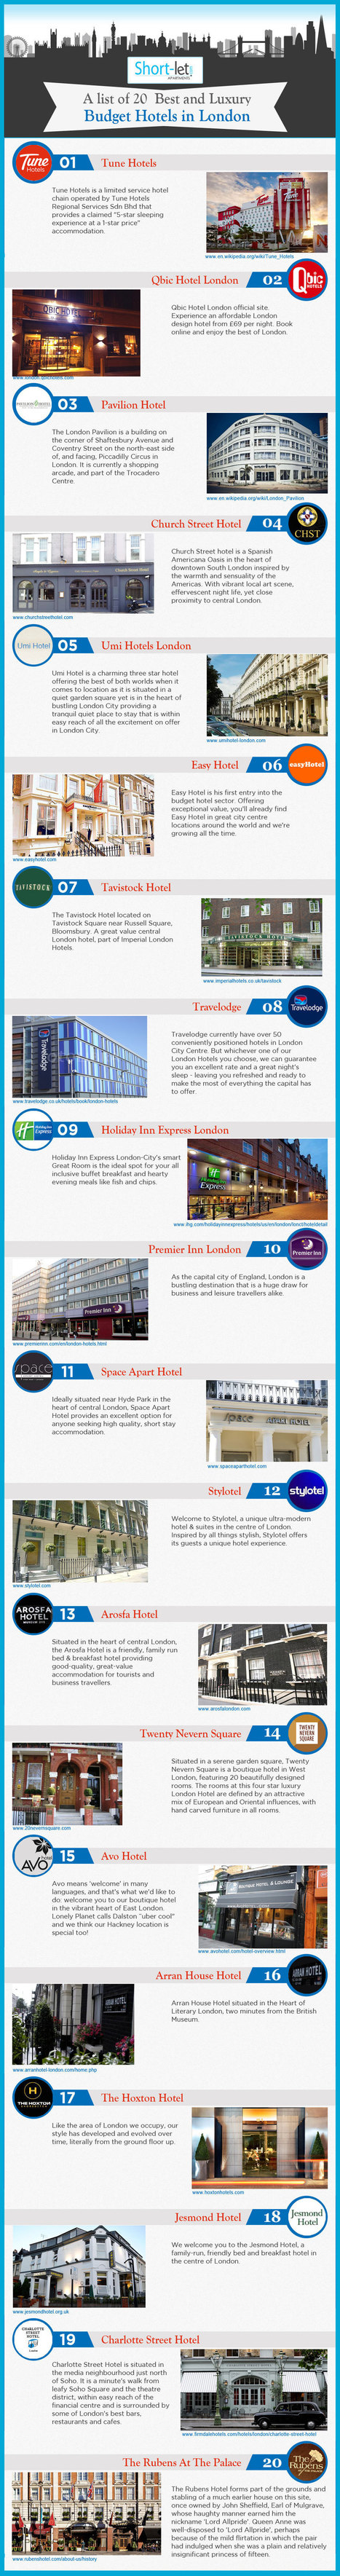 Top 20 Budget-Based Luxurious Hotels to Stay in London | Short Let Apartments in London | Scoop.it